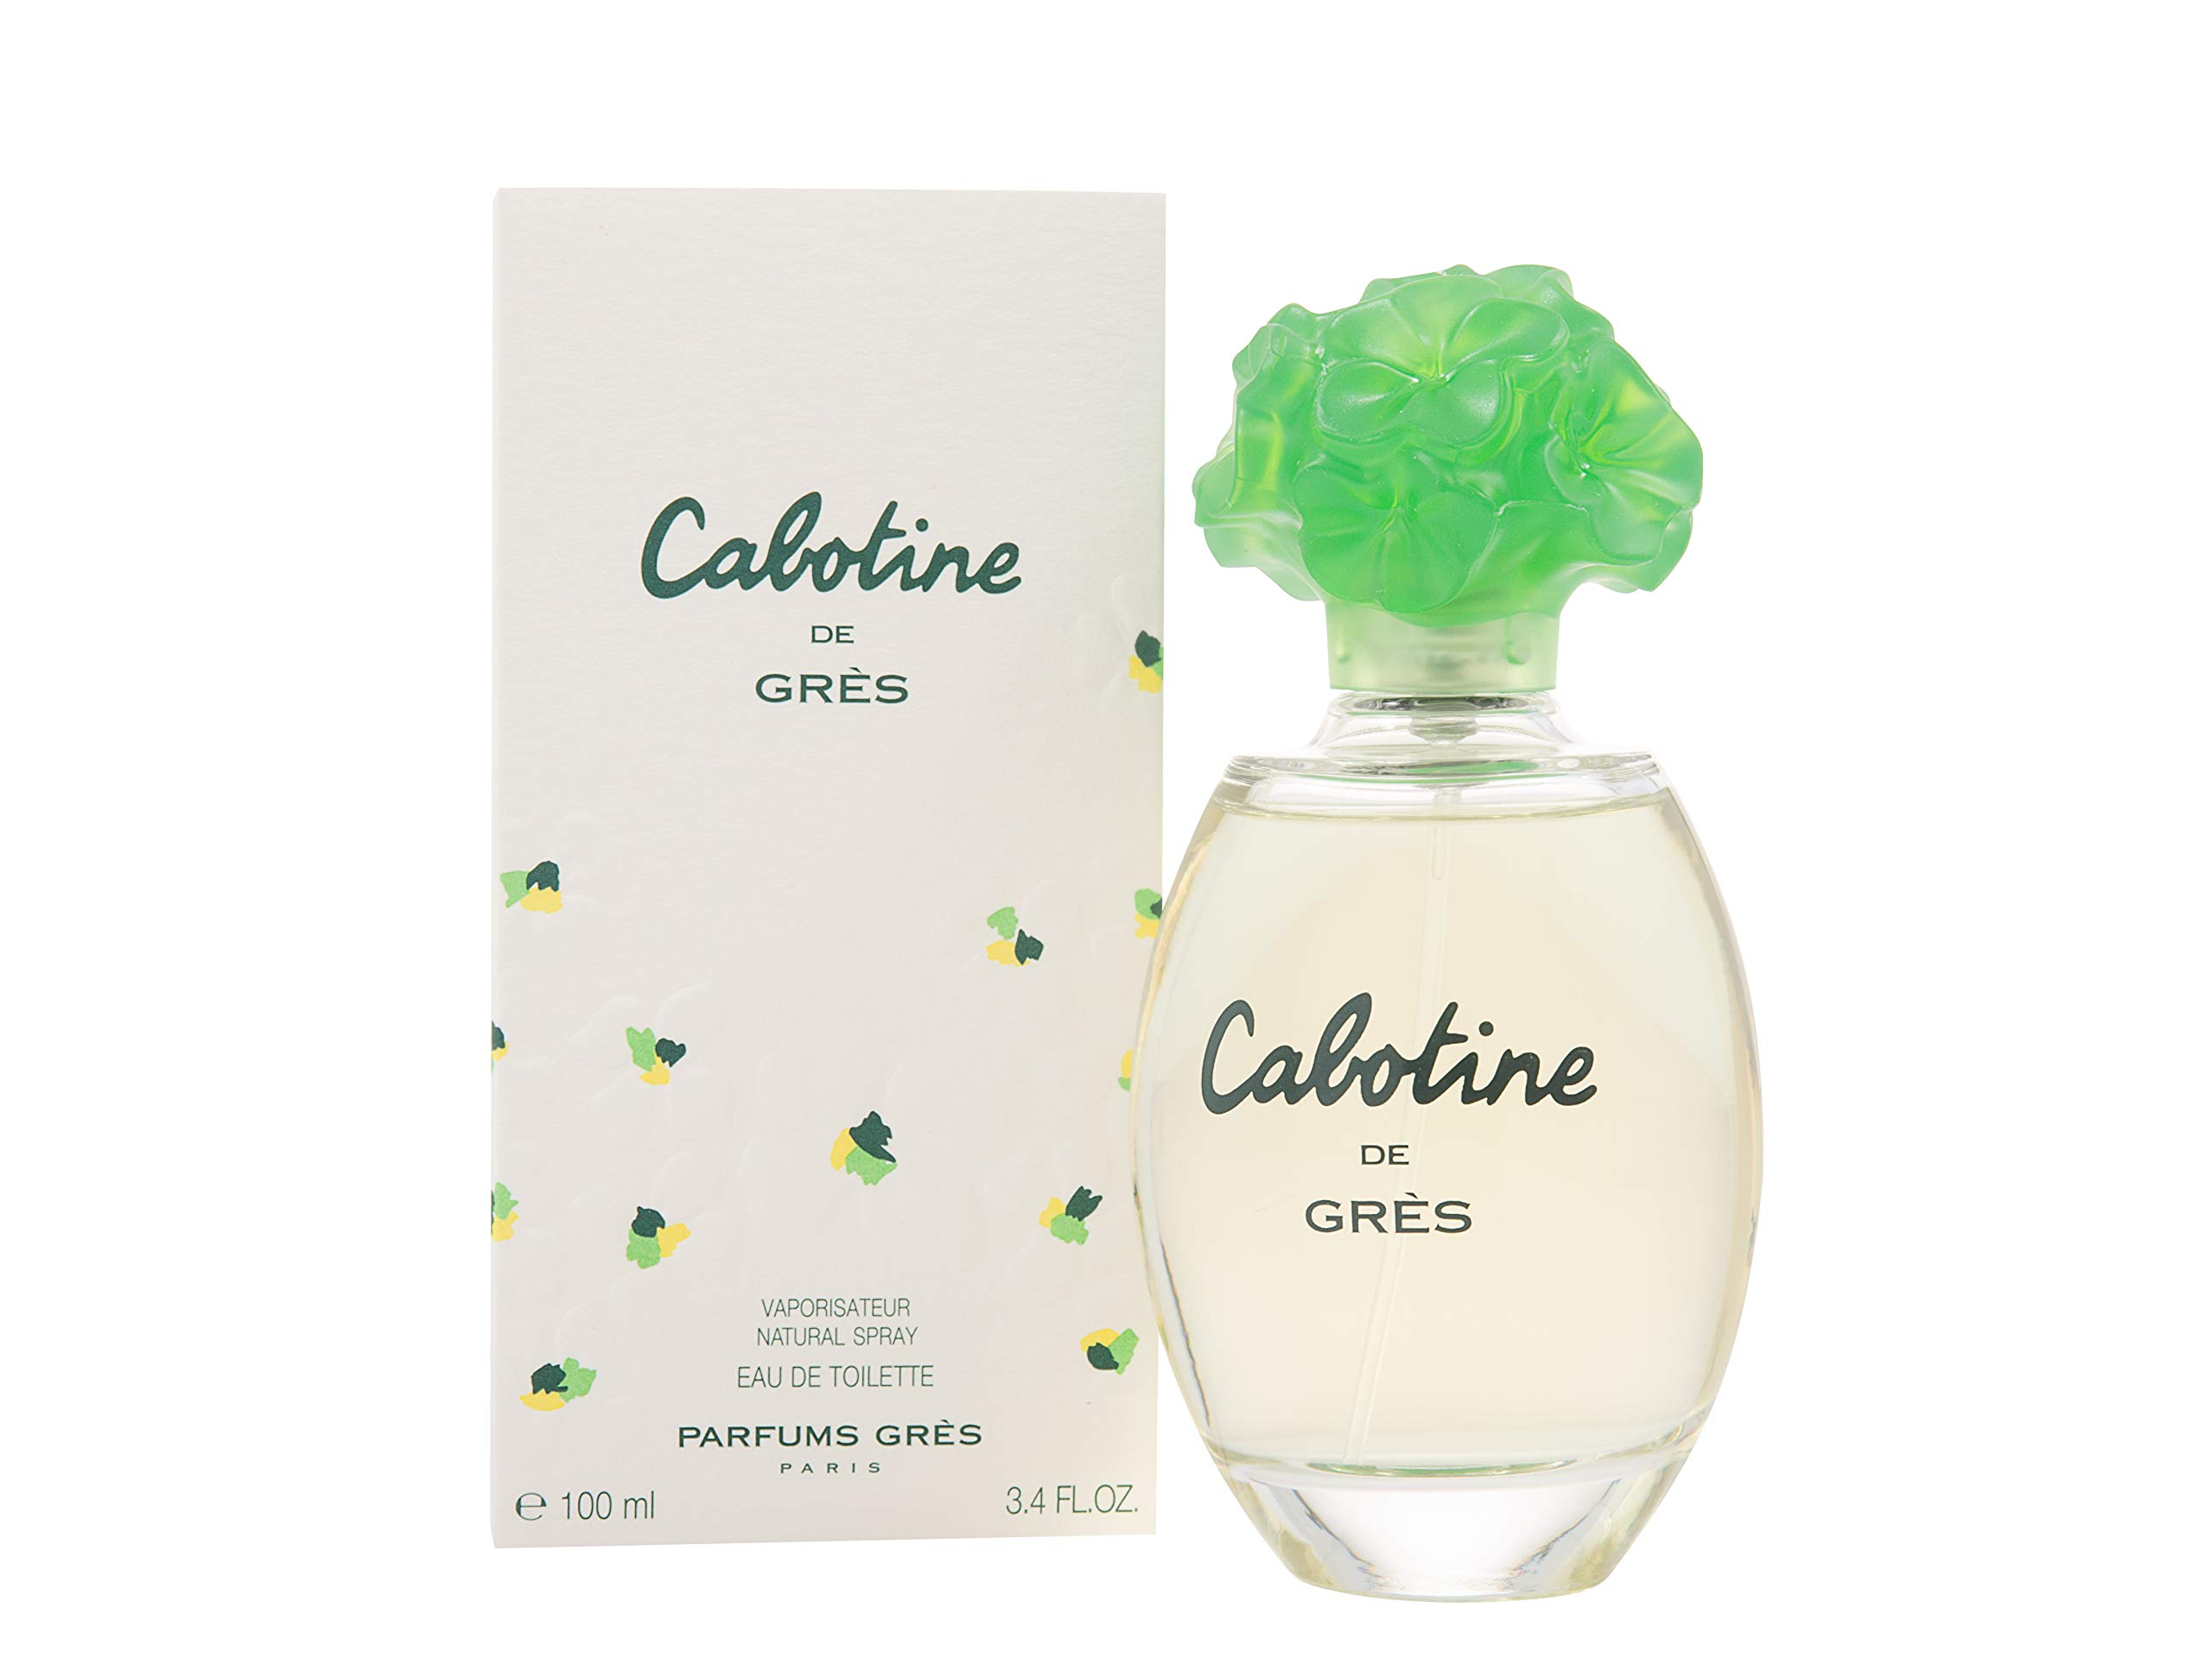 Cabotine Women Eau De Toilette Spray by Gres, 3.4 Ounce by Gres